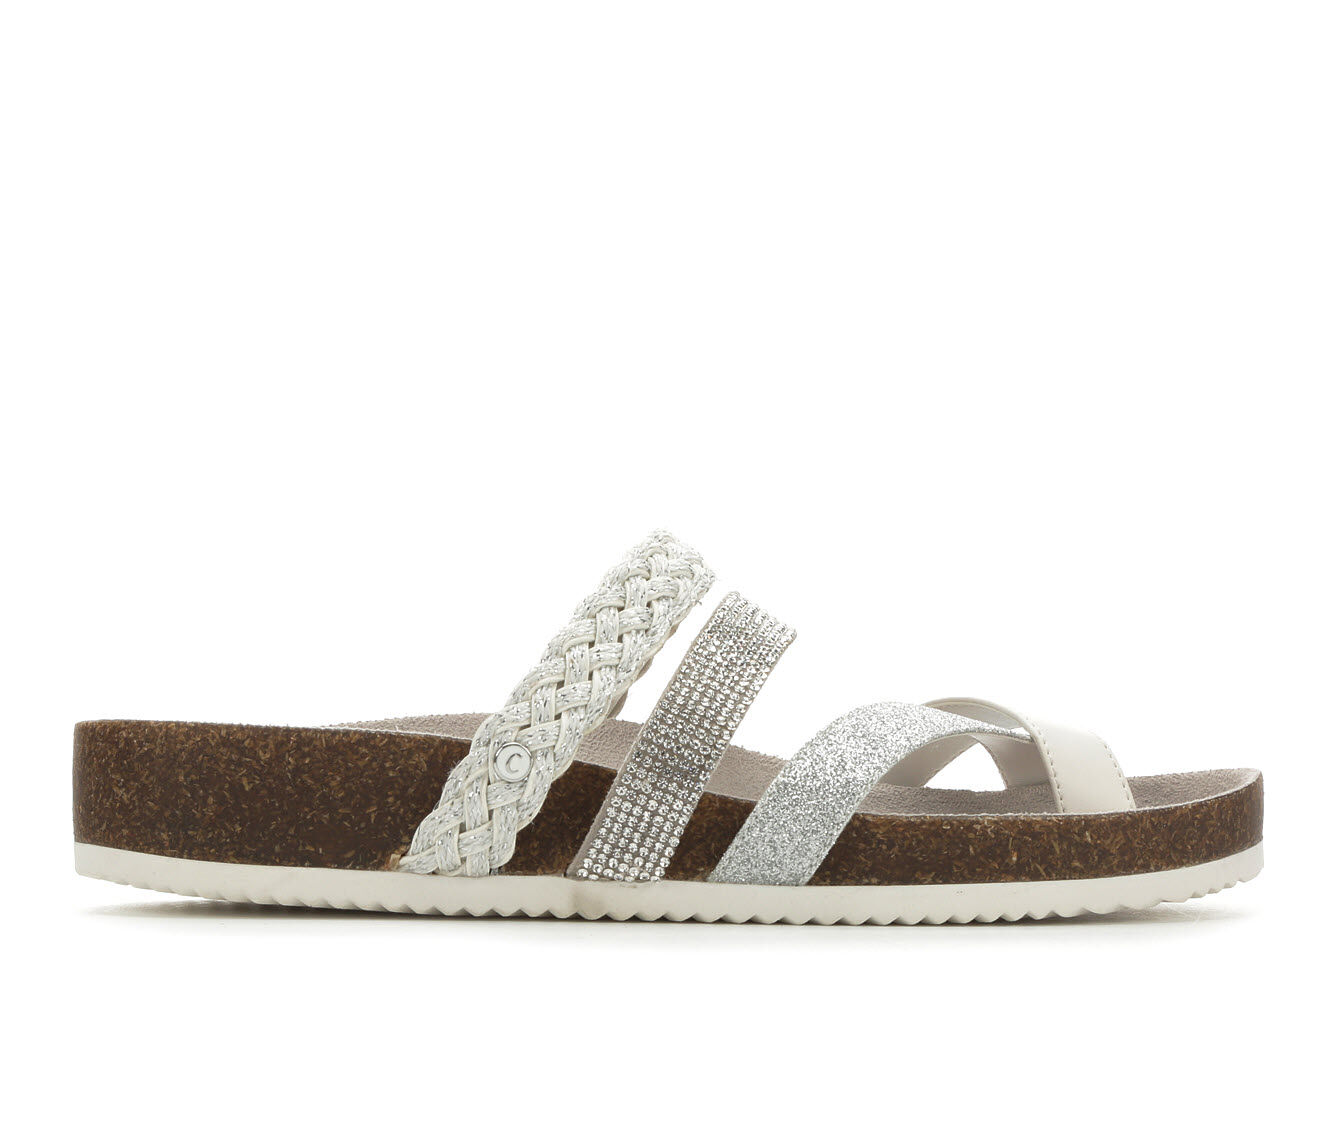 Women's Circus by Sam Edelman Oriel Footbed Sandals Brt Wht/Silver